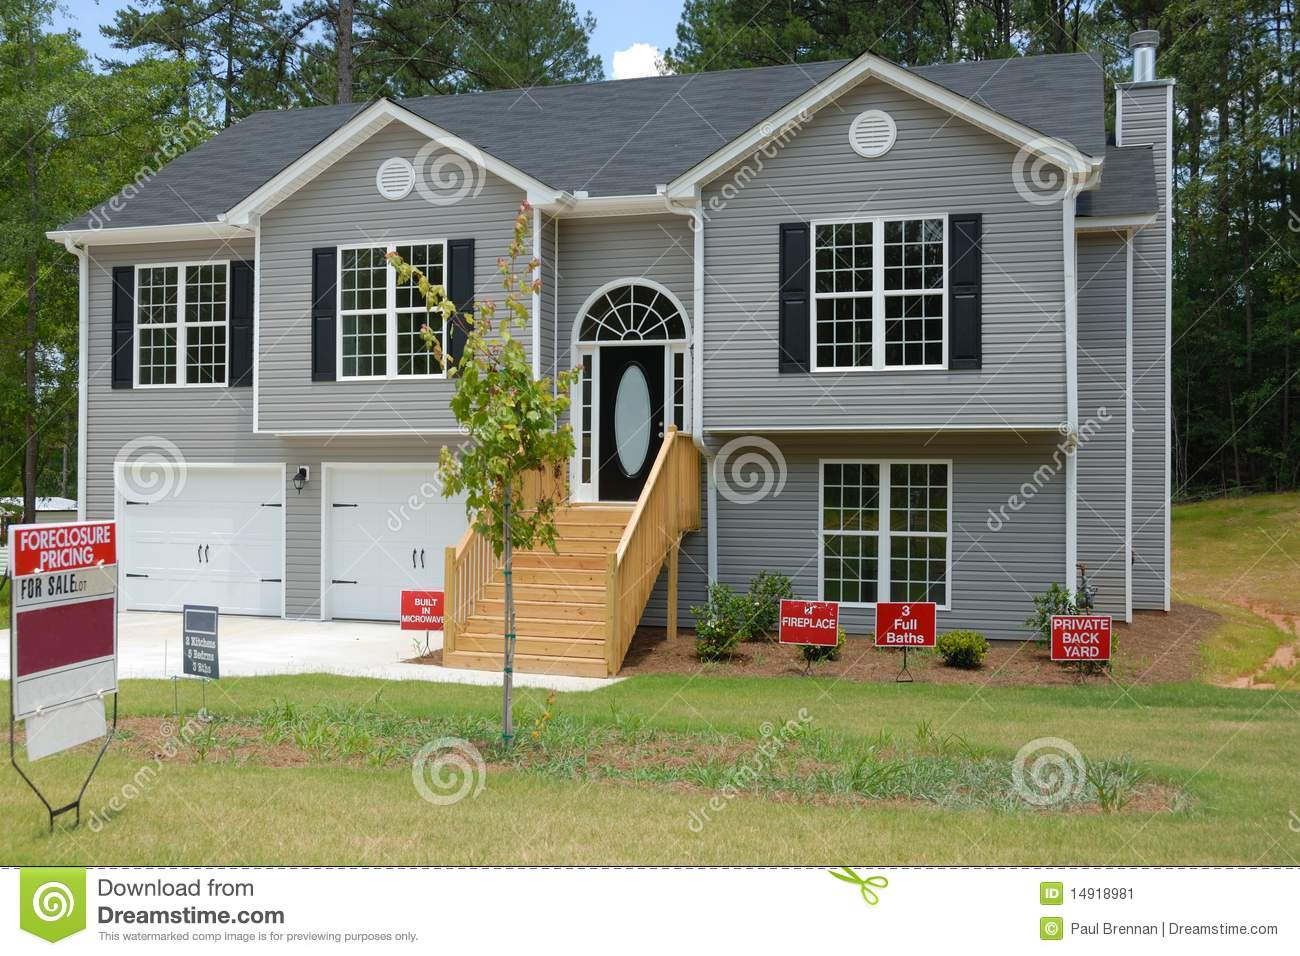 Split level home for sale stock image image 14918981 for New split level homes